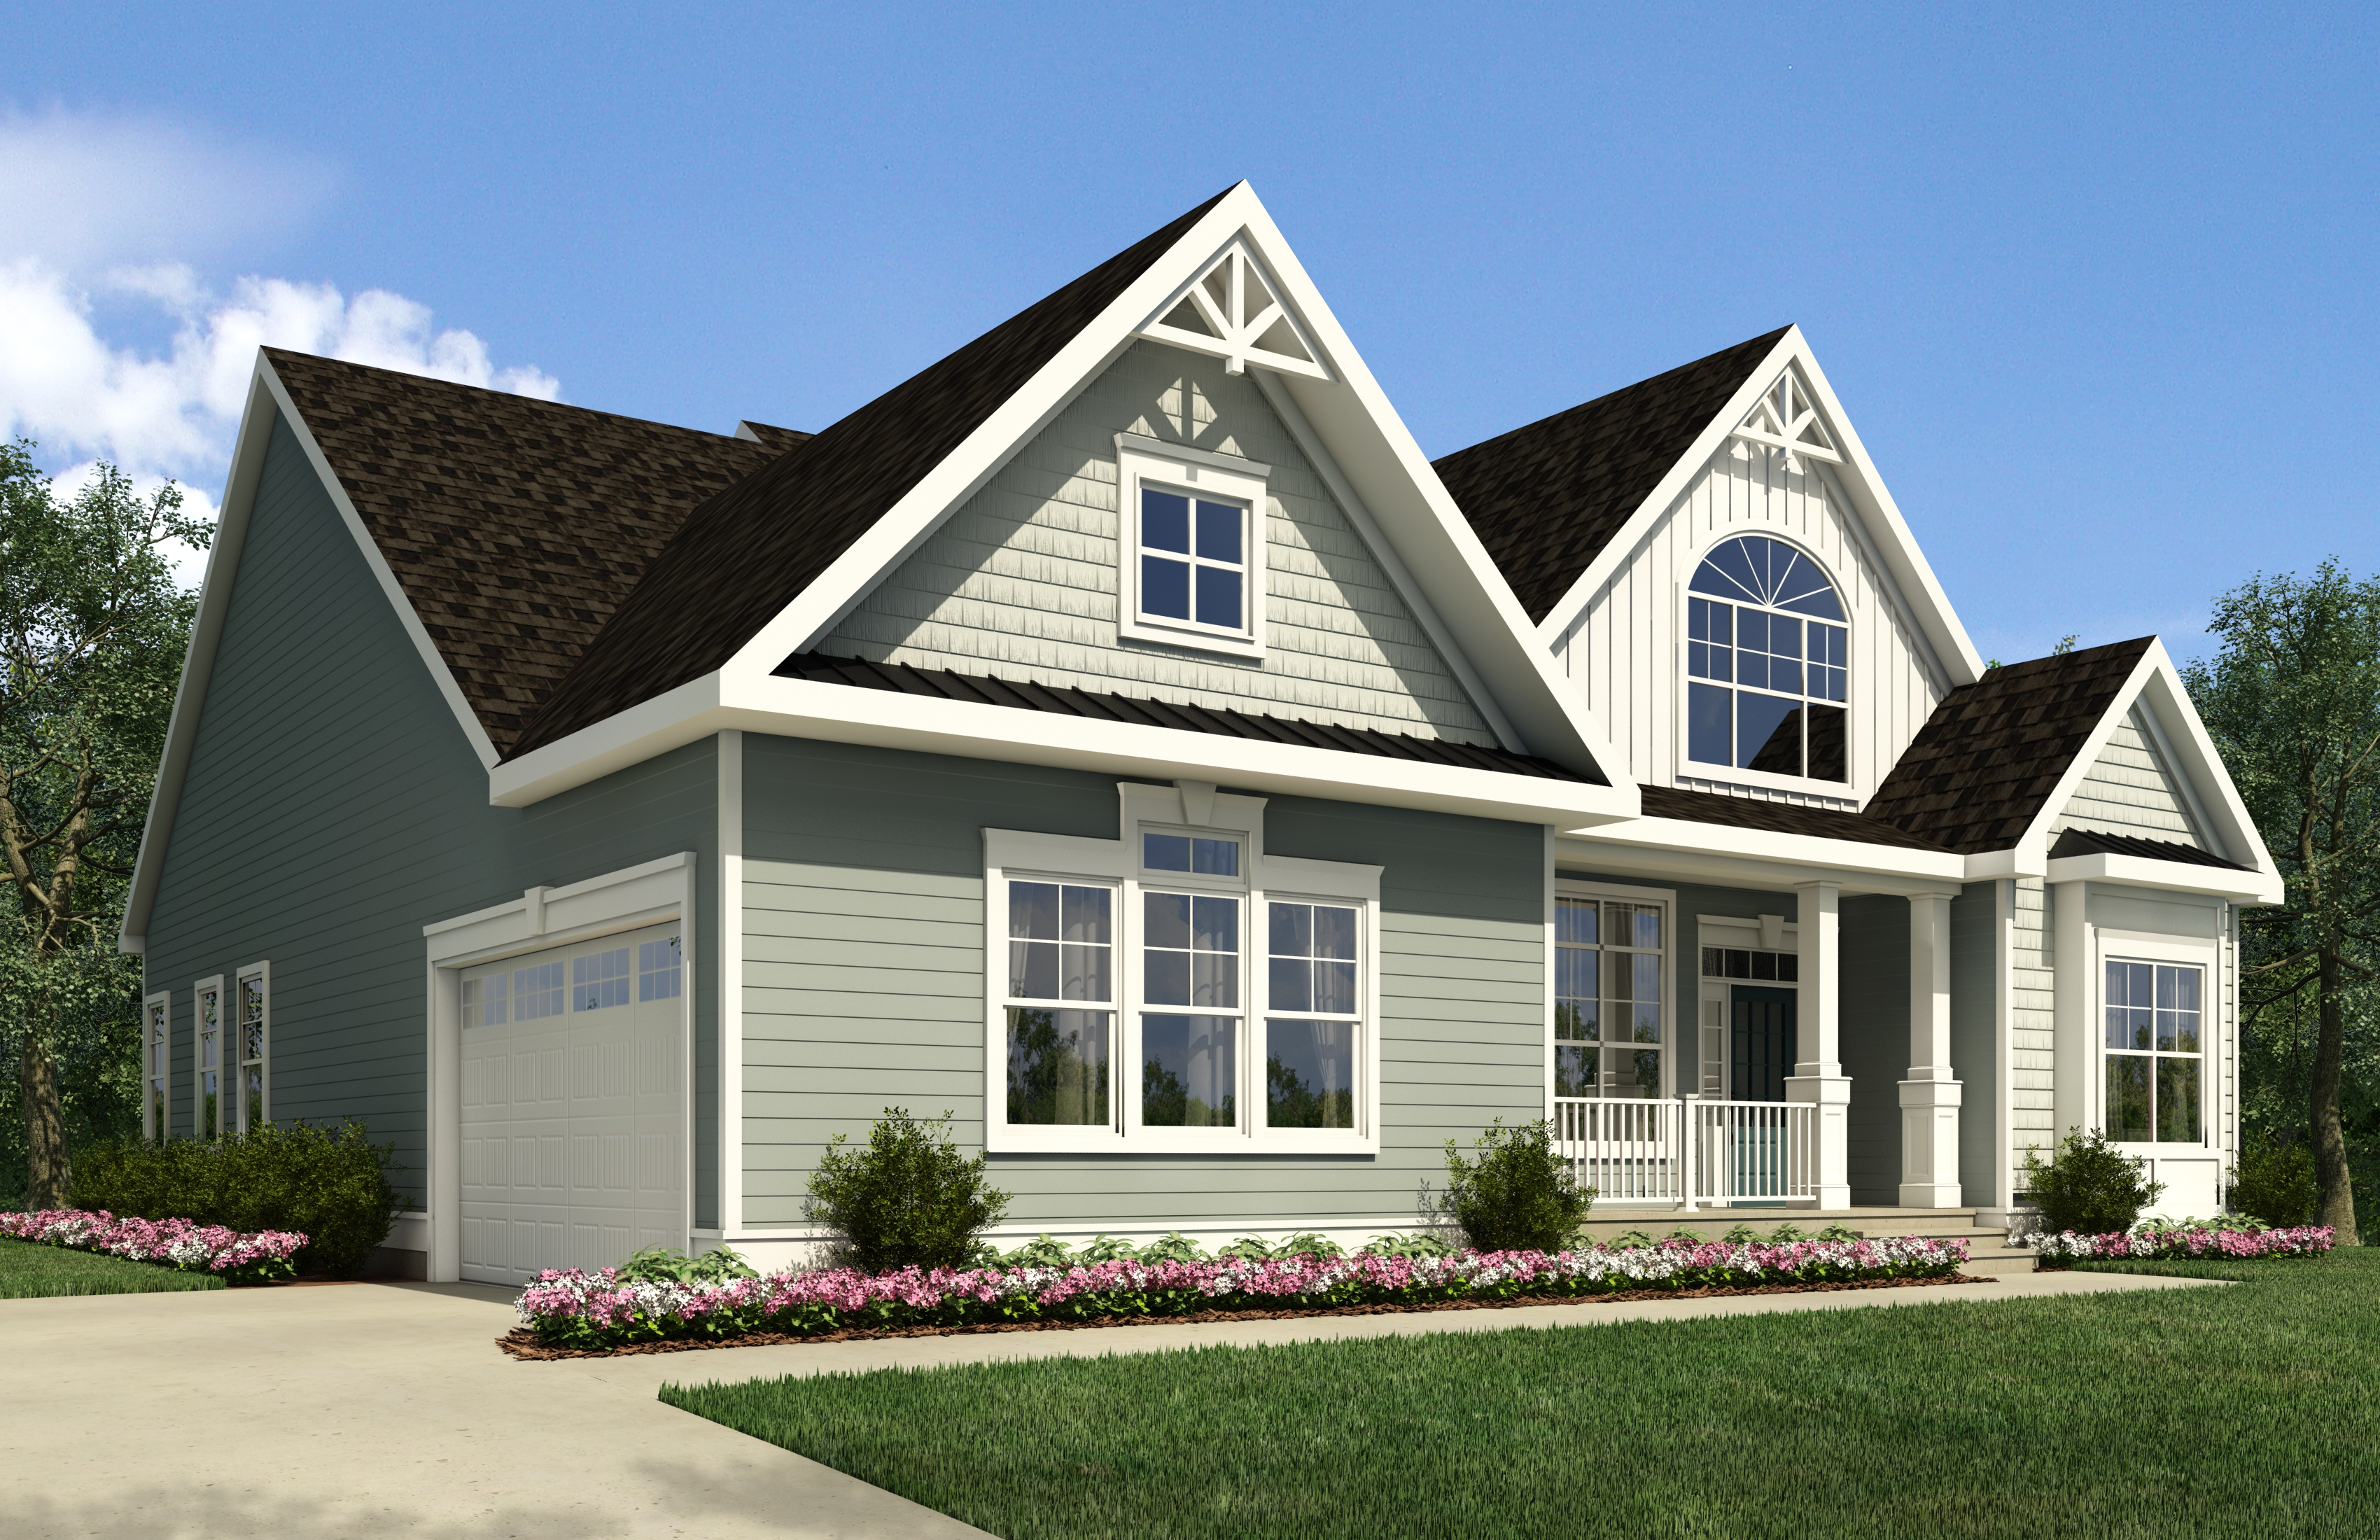 Cartwright new home from insight homes in delaware for Cartwright builders